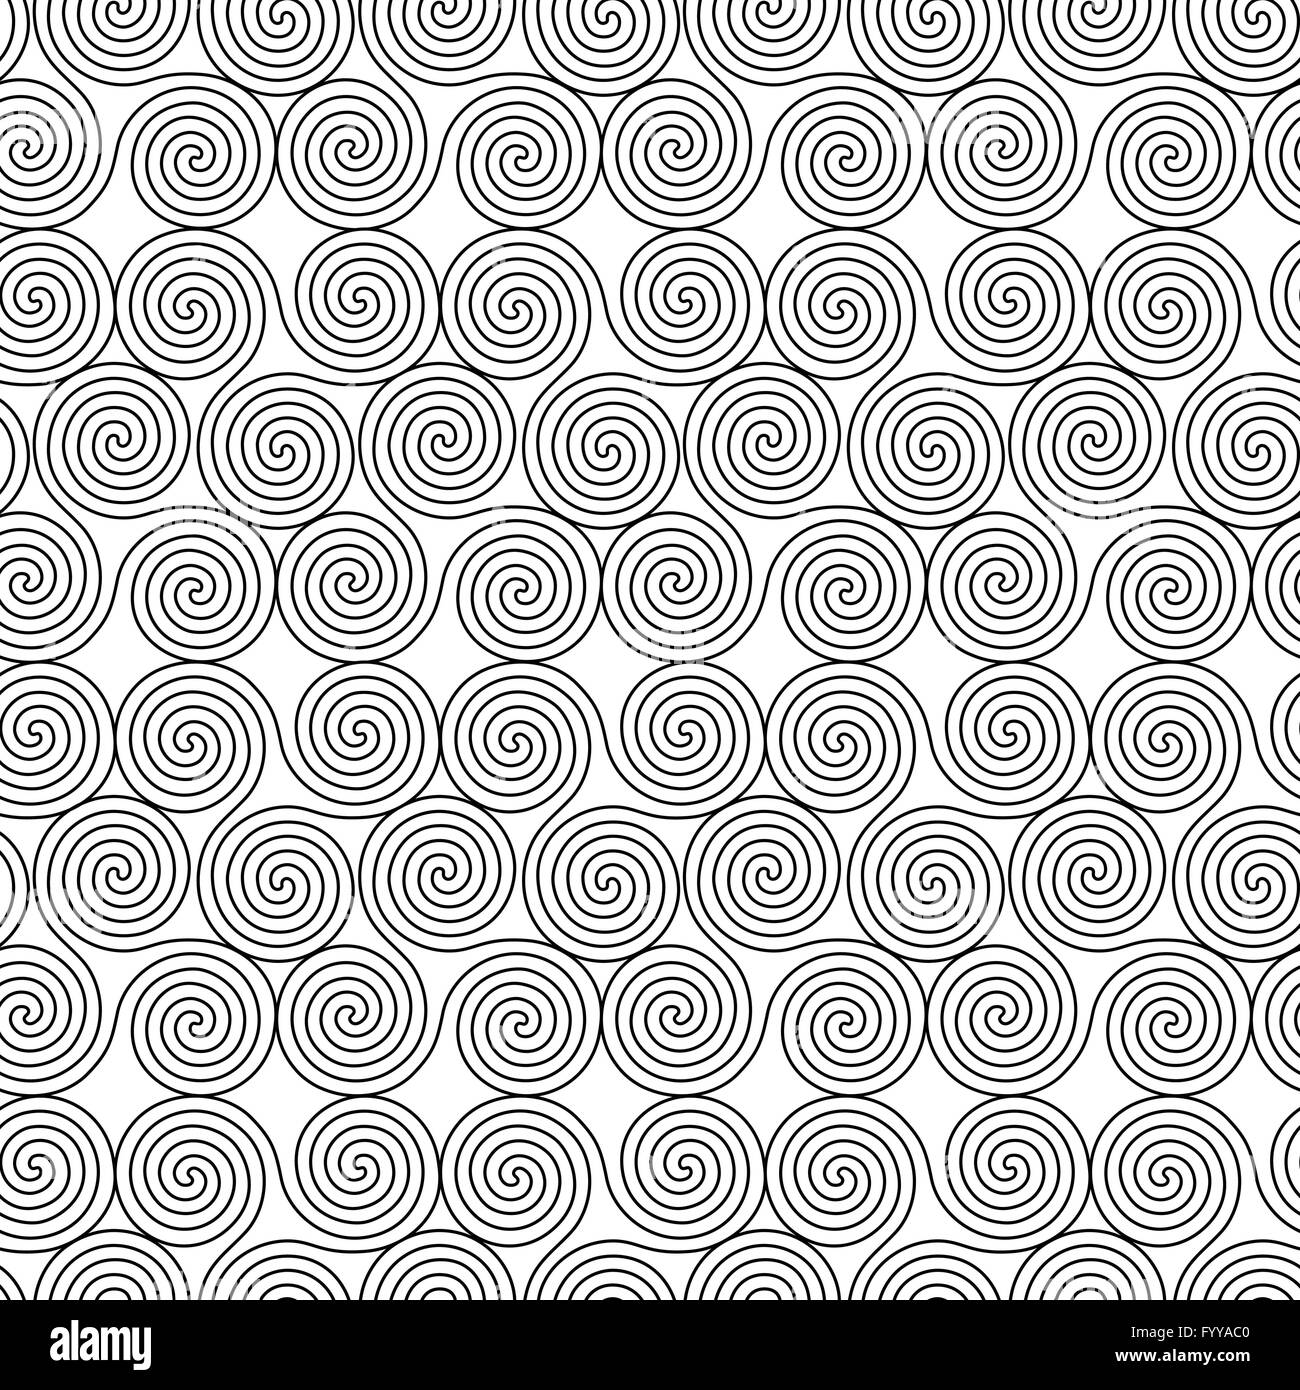 Monochrome seamless vector pattern with swirling triple spiral or monochrome seamless vector pattern with swirling triple spiral or triskele a complex ancient celtic symbol black shapes on the buycottarizona Images